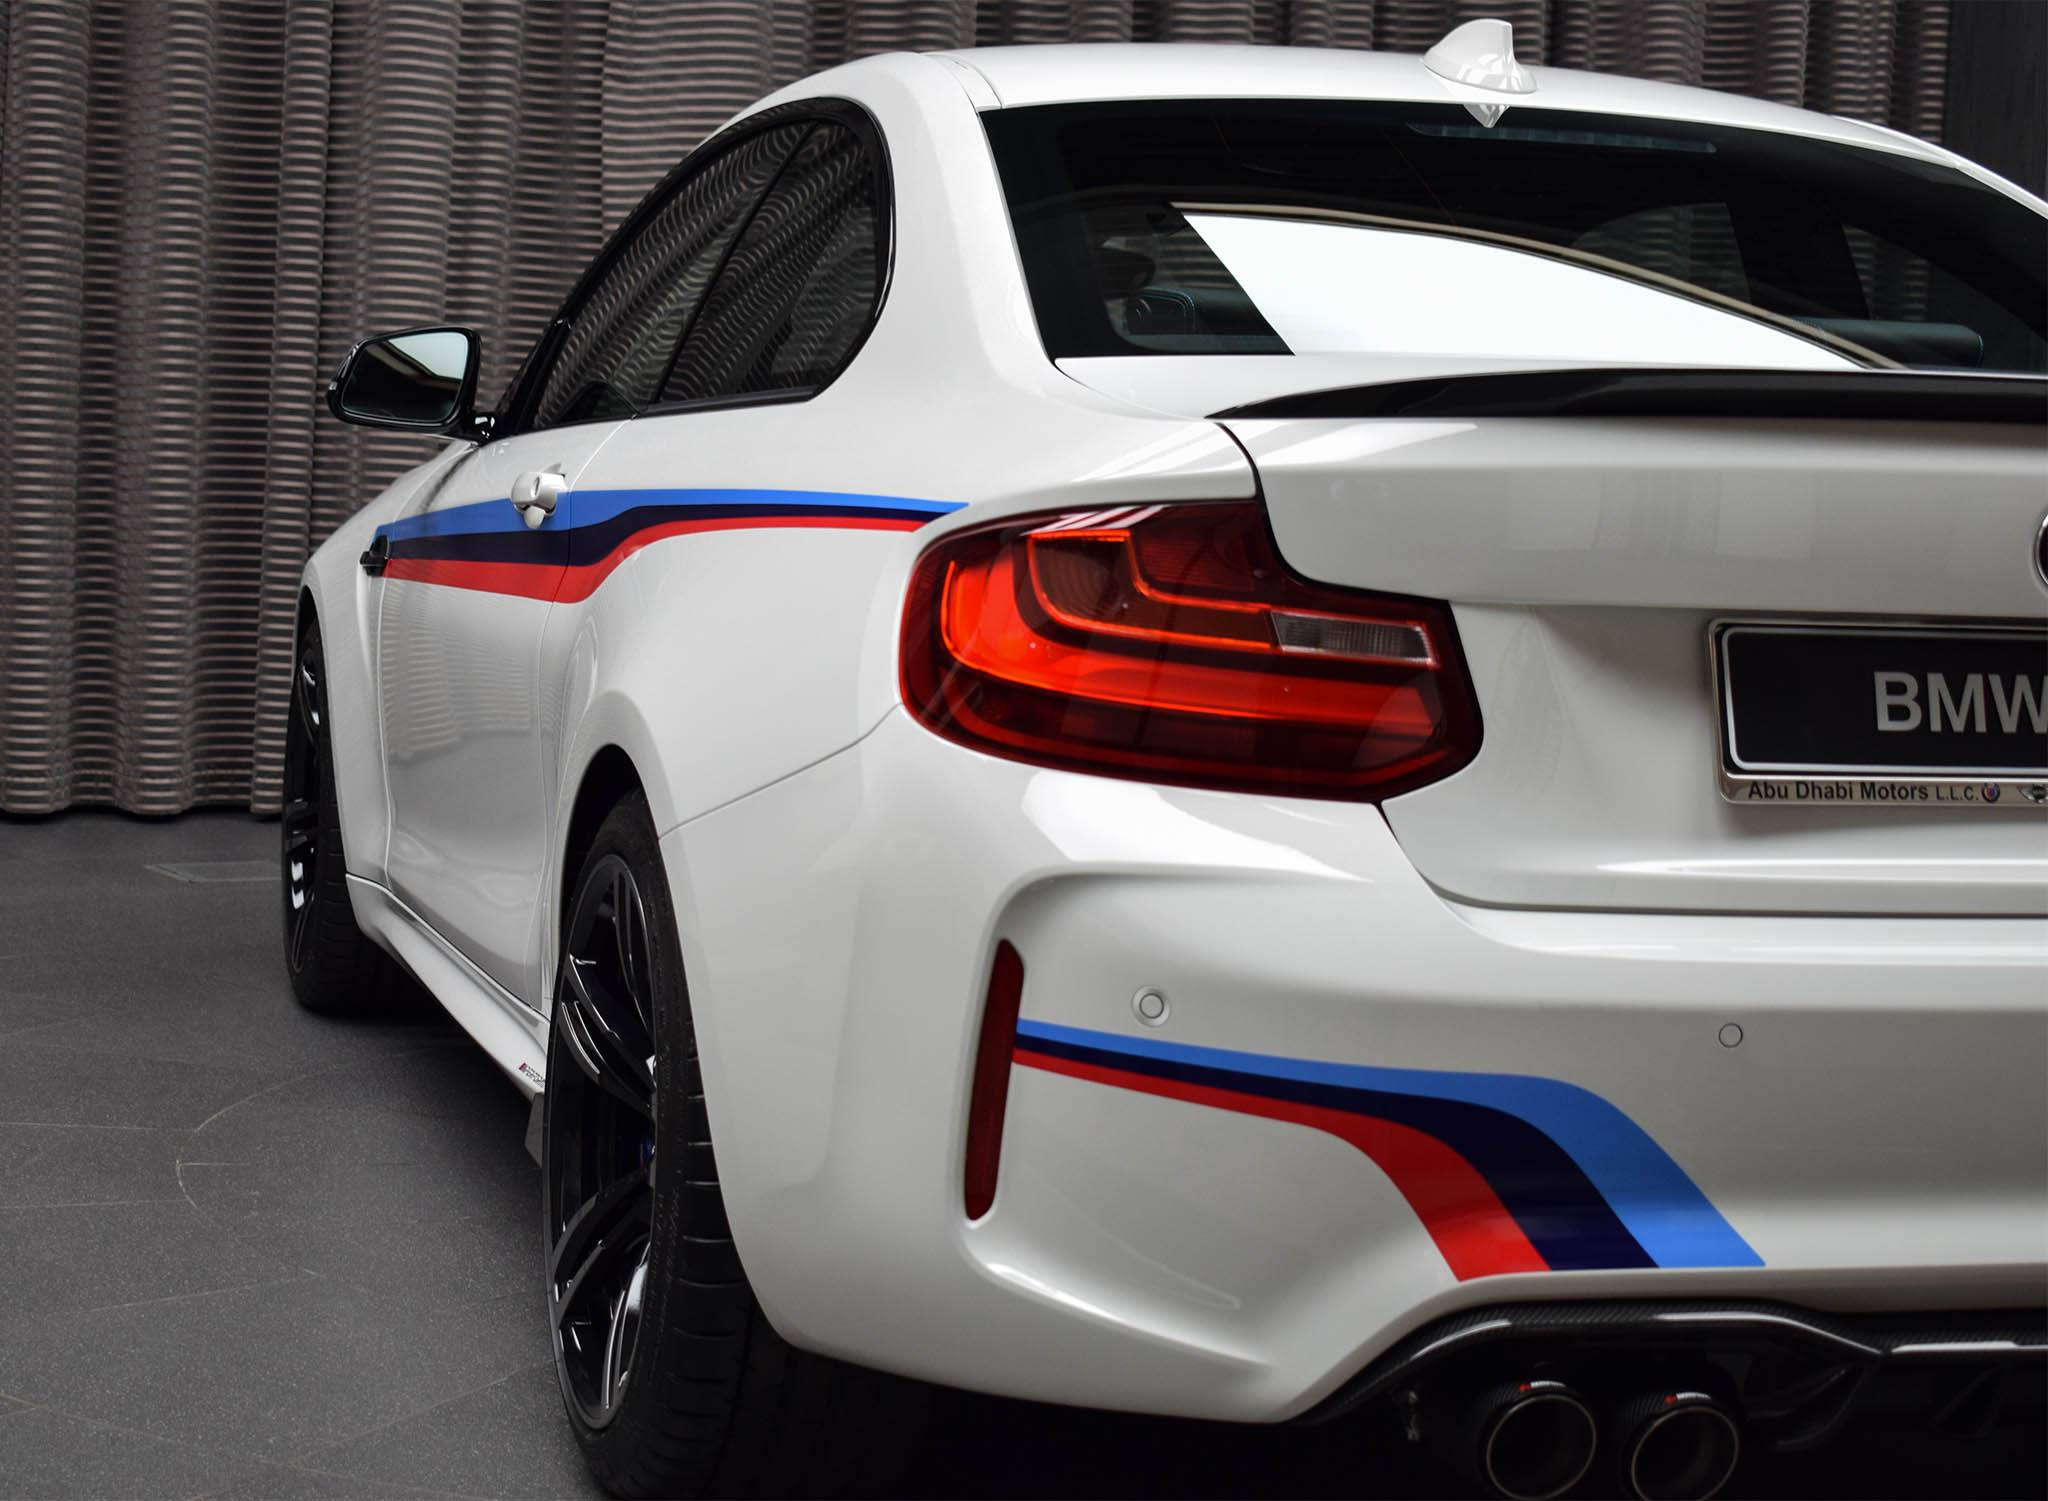 BMW M2 with M Performance parts (26)